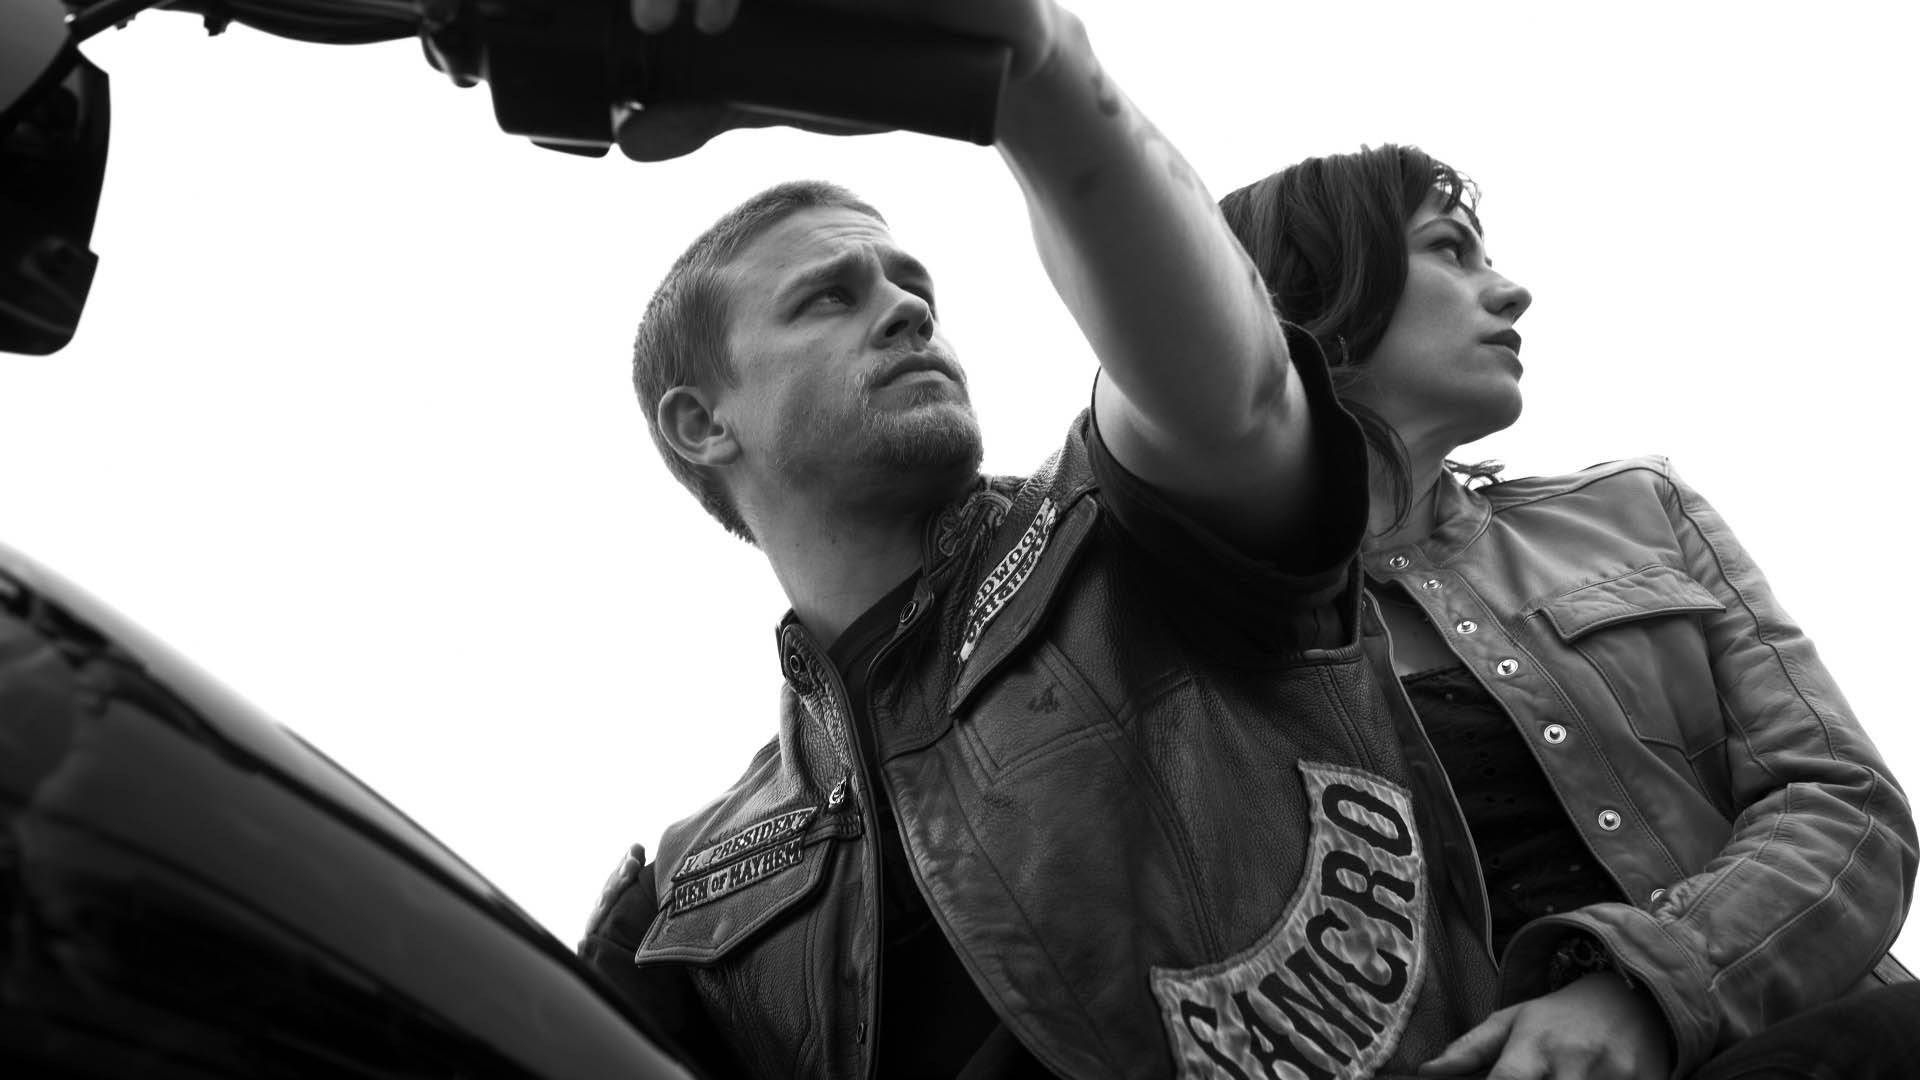 2016 06 11 sons of anarchy images for backgrounds desktop free 2016 06 11 sons of anarchy images for backgrounds desktop free voltagebd Gallery